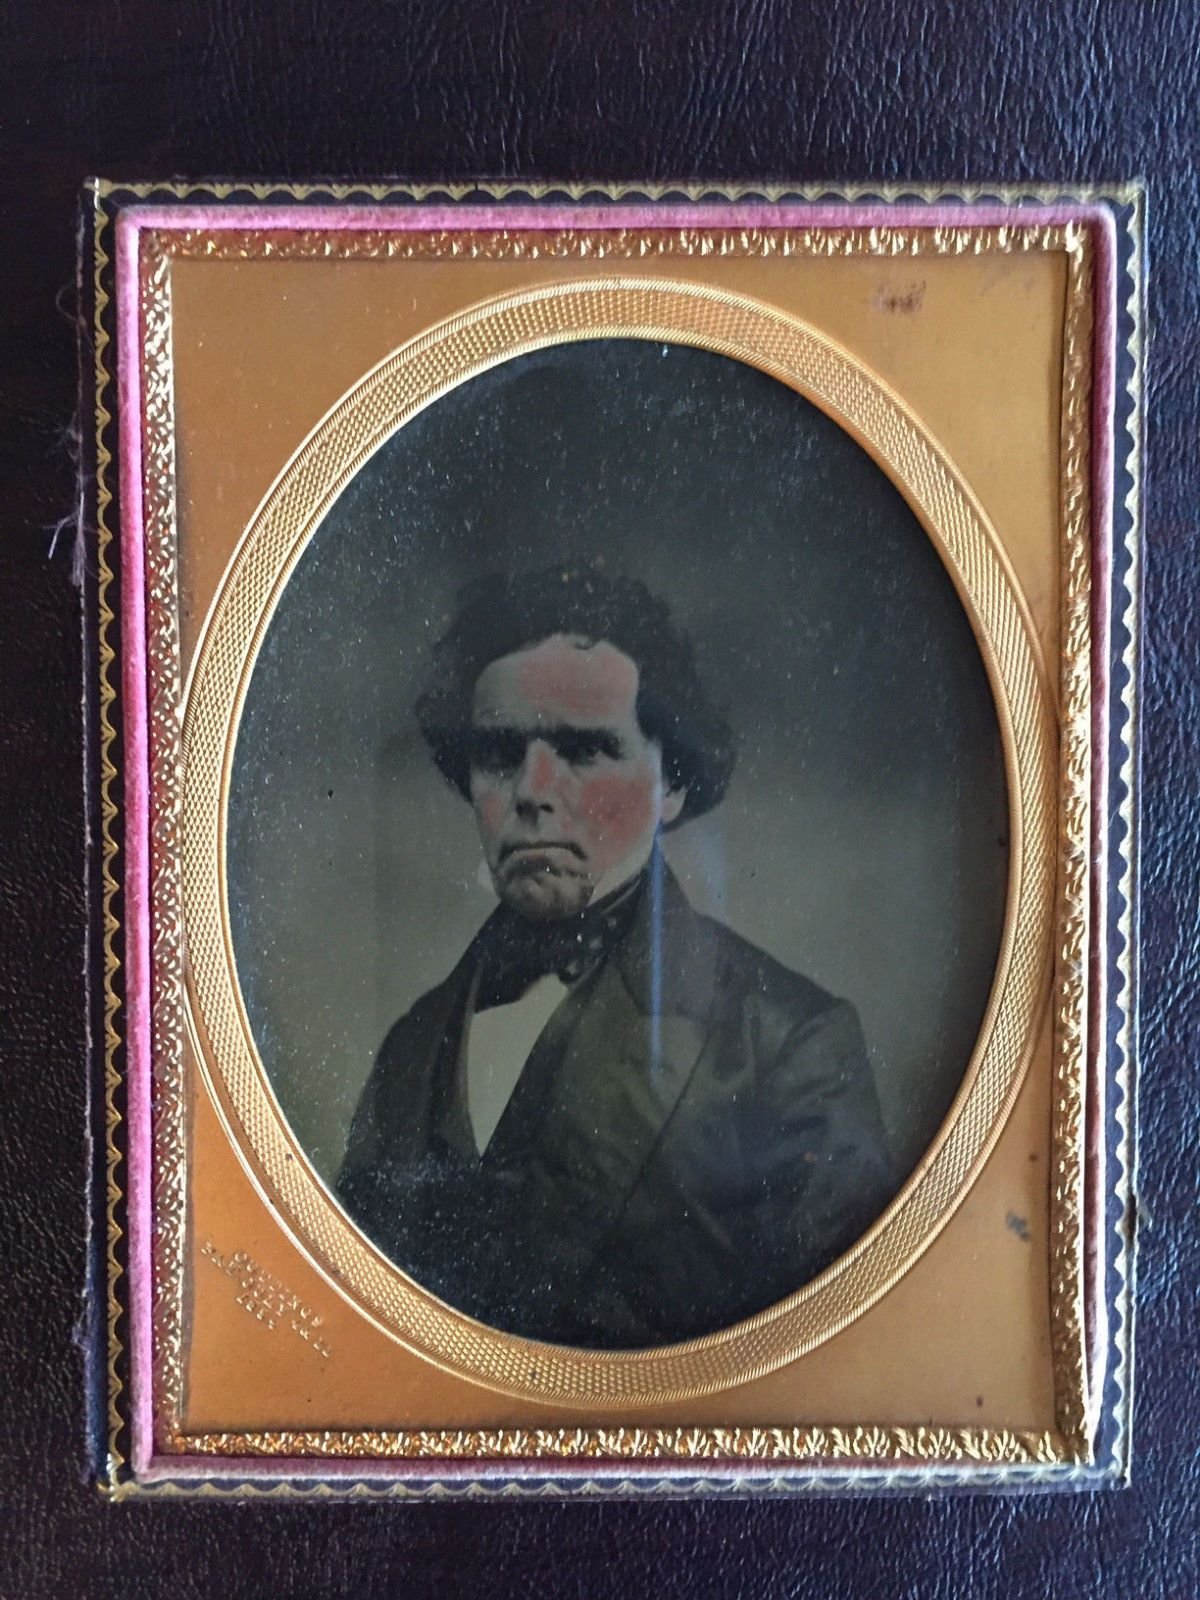 Rare 1850s Color Ambrotype Stern Gentleman Resembles Daniel Webster | eBay